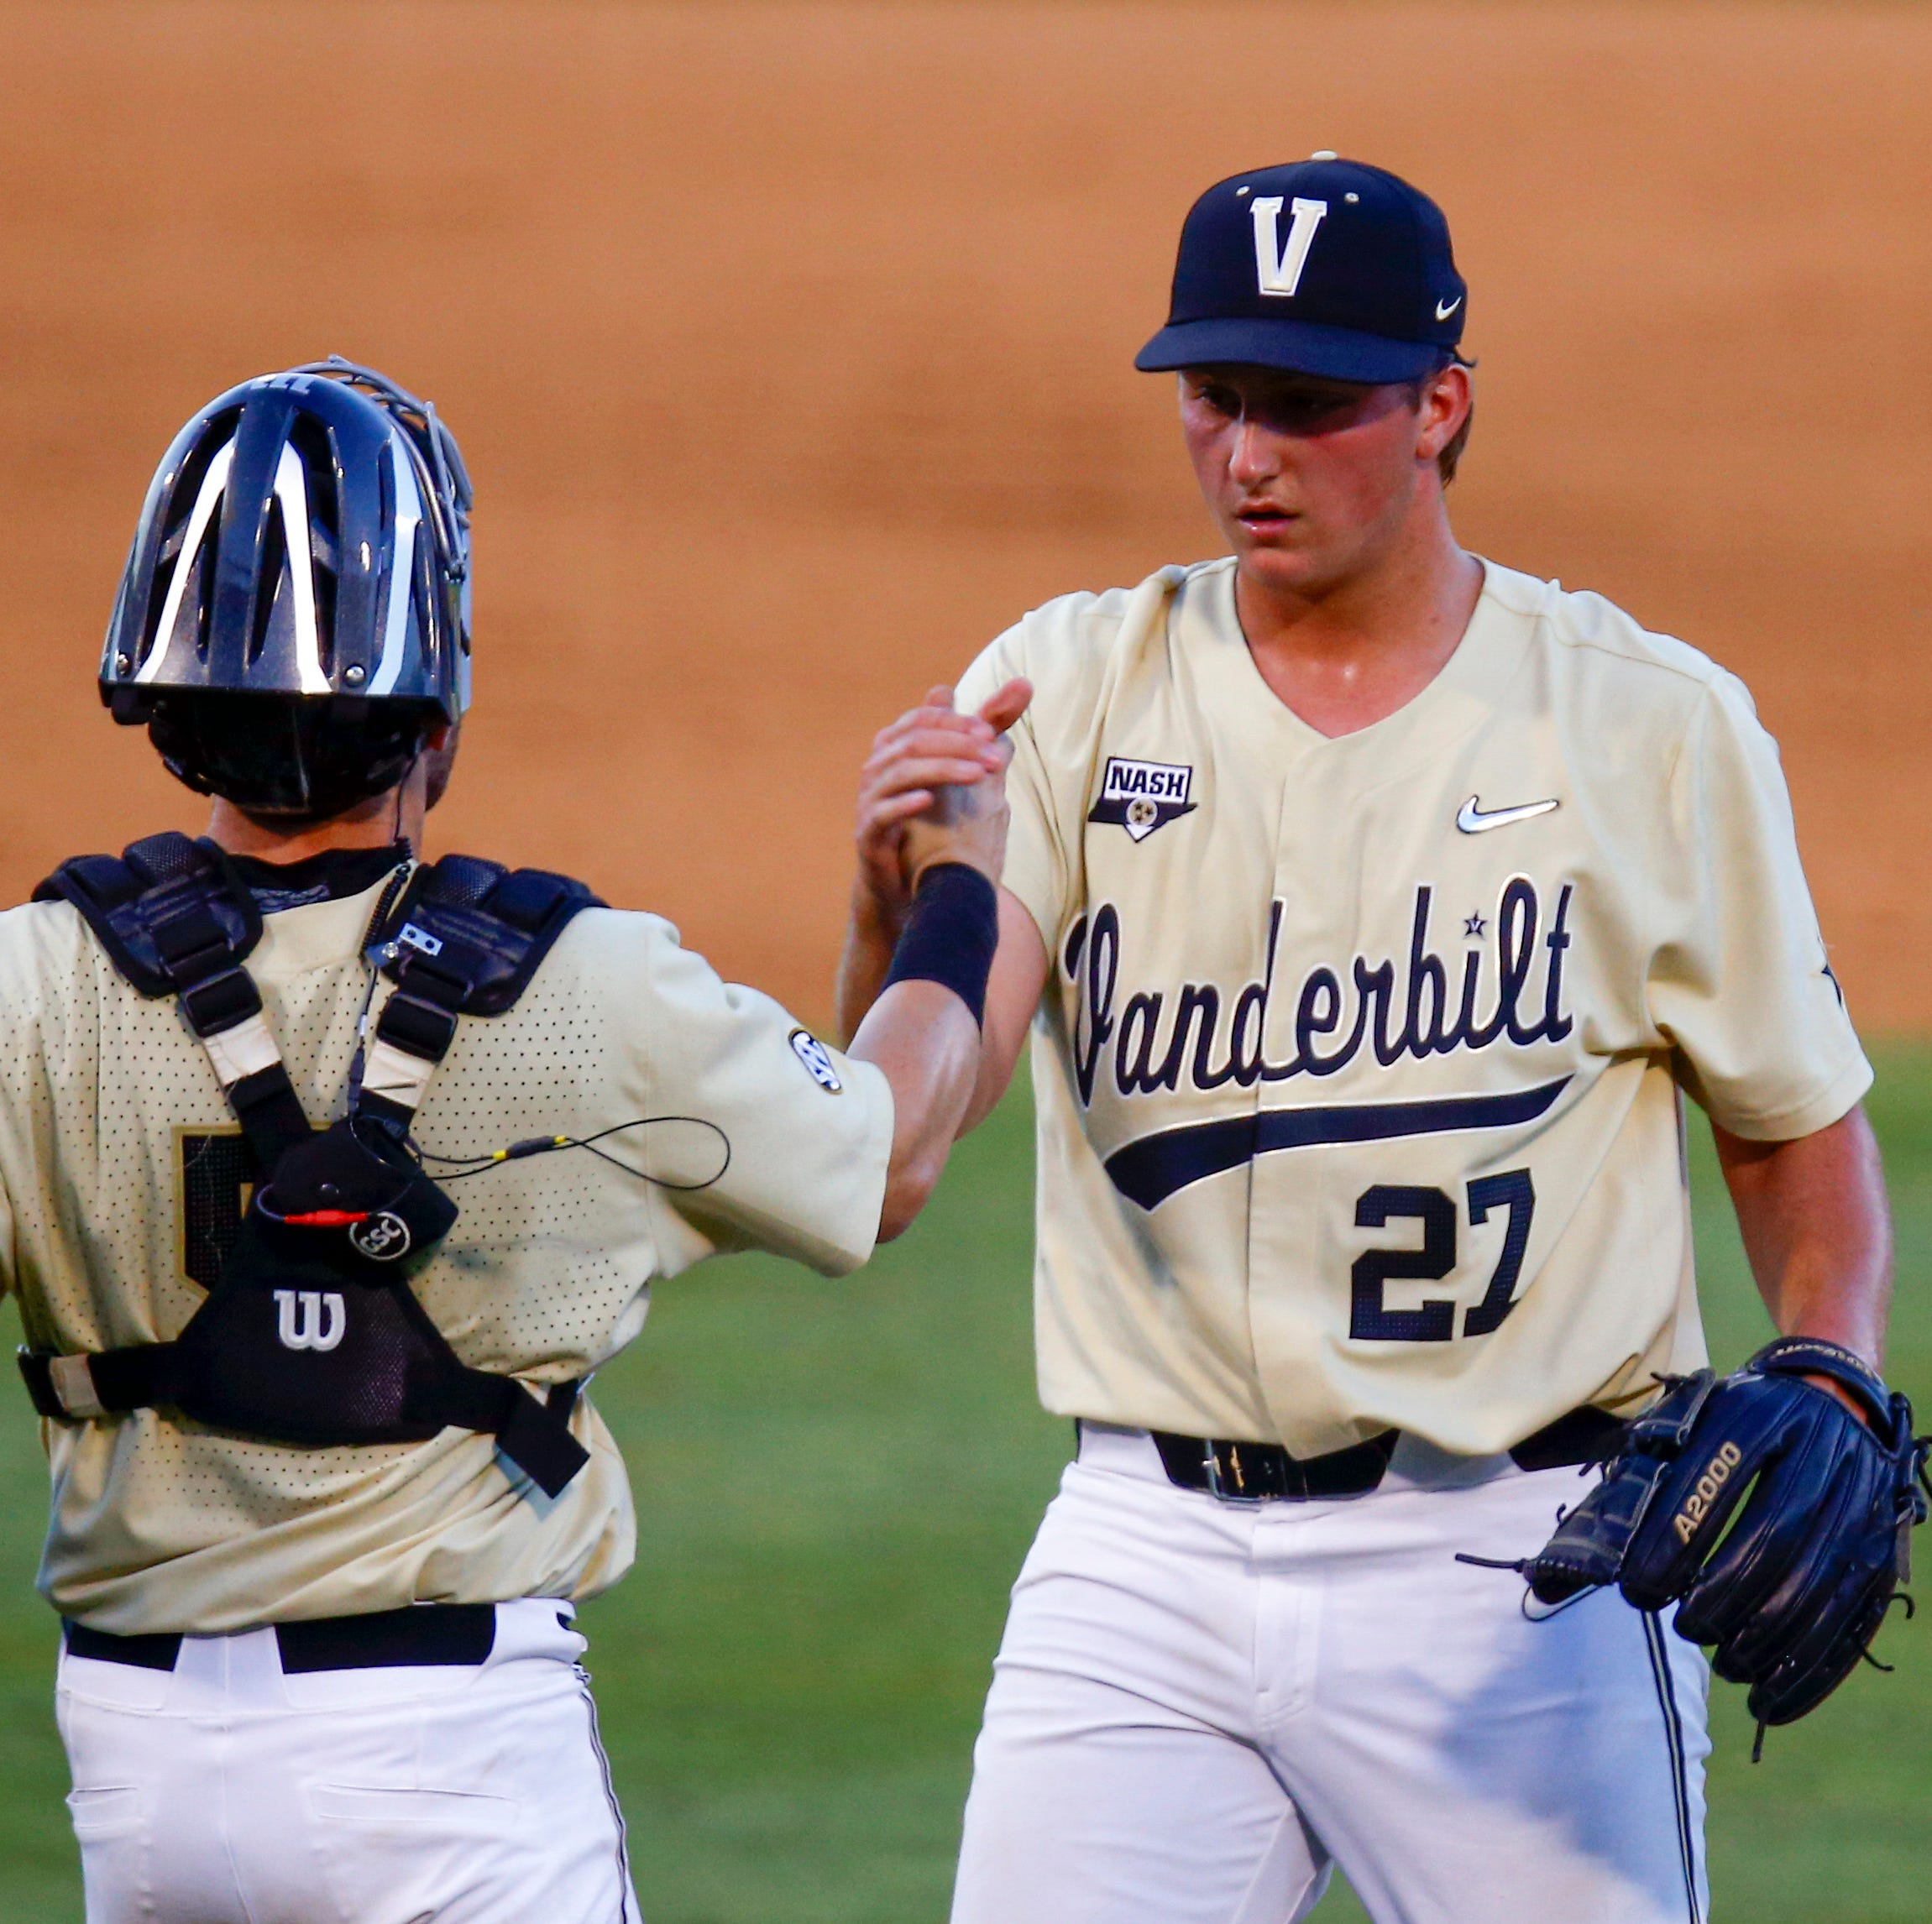 Vanderbilt baseball named NCAA Regional host an hour after winning SEC Tournament title